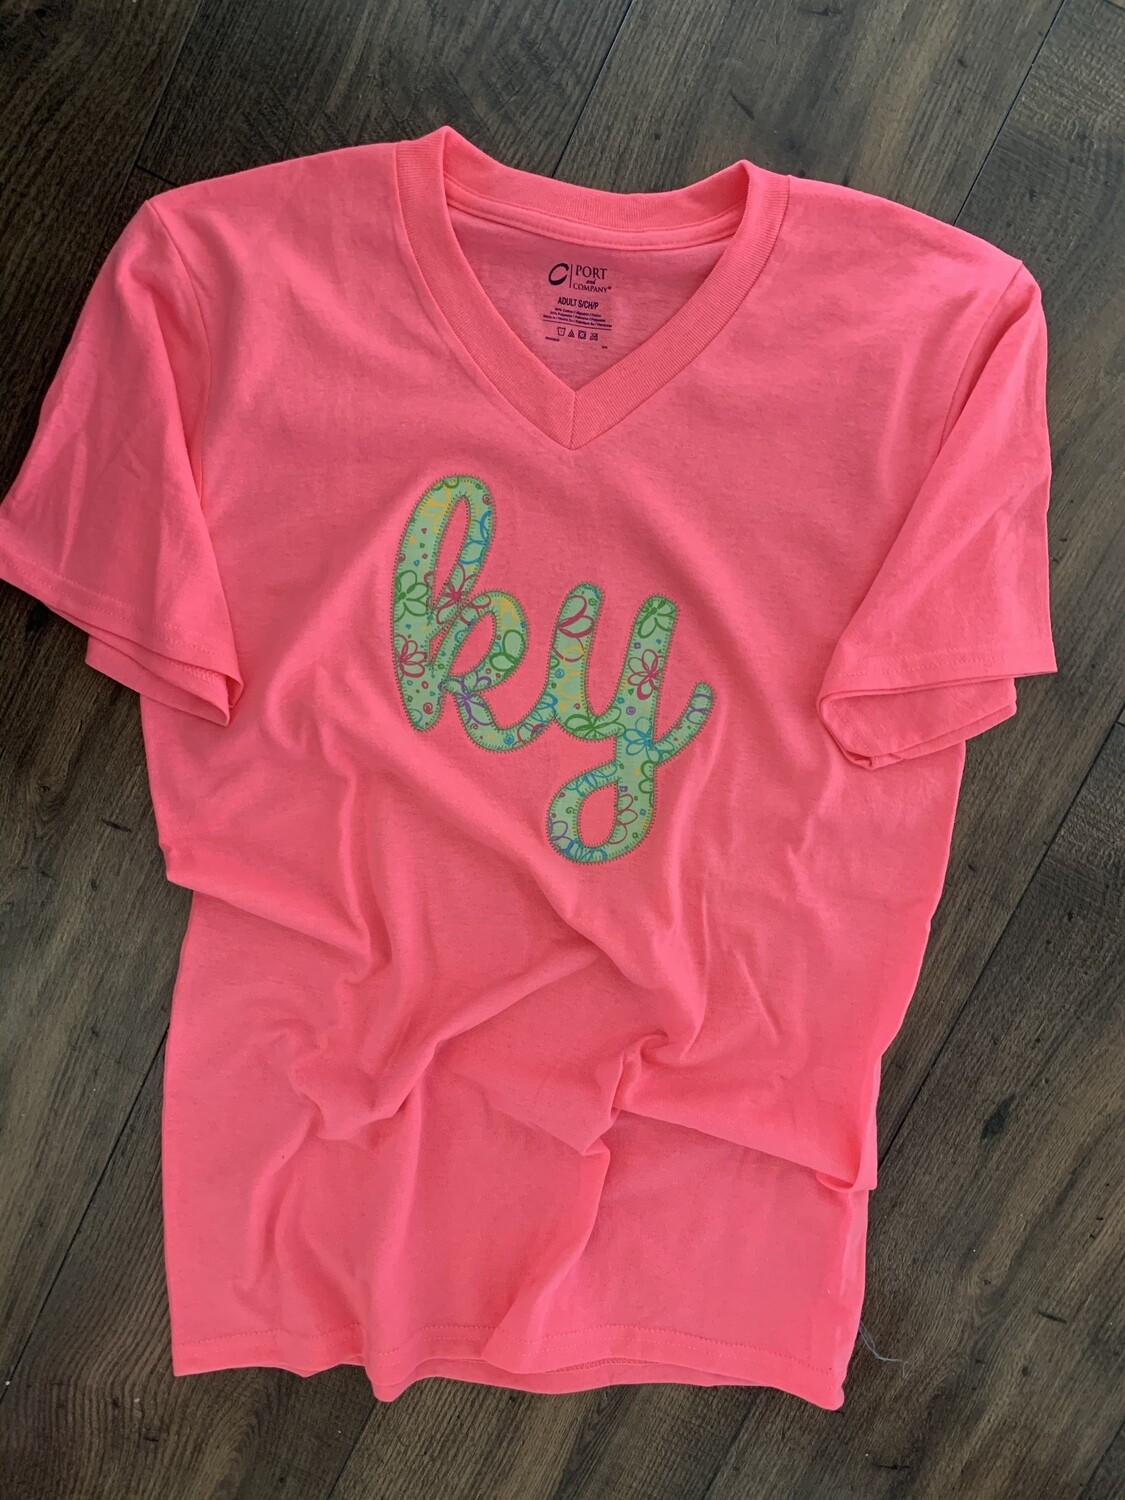 Ky Script Flower Power V-Neck Neon Pink Short Sleeve Tee